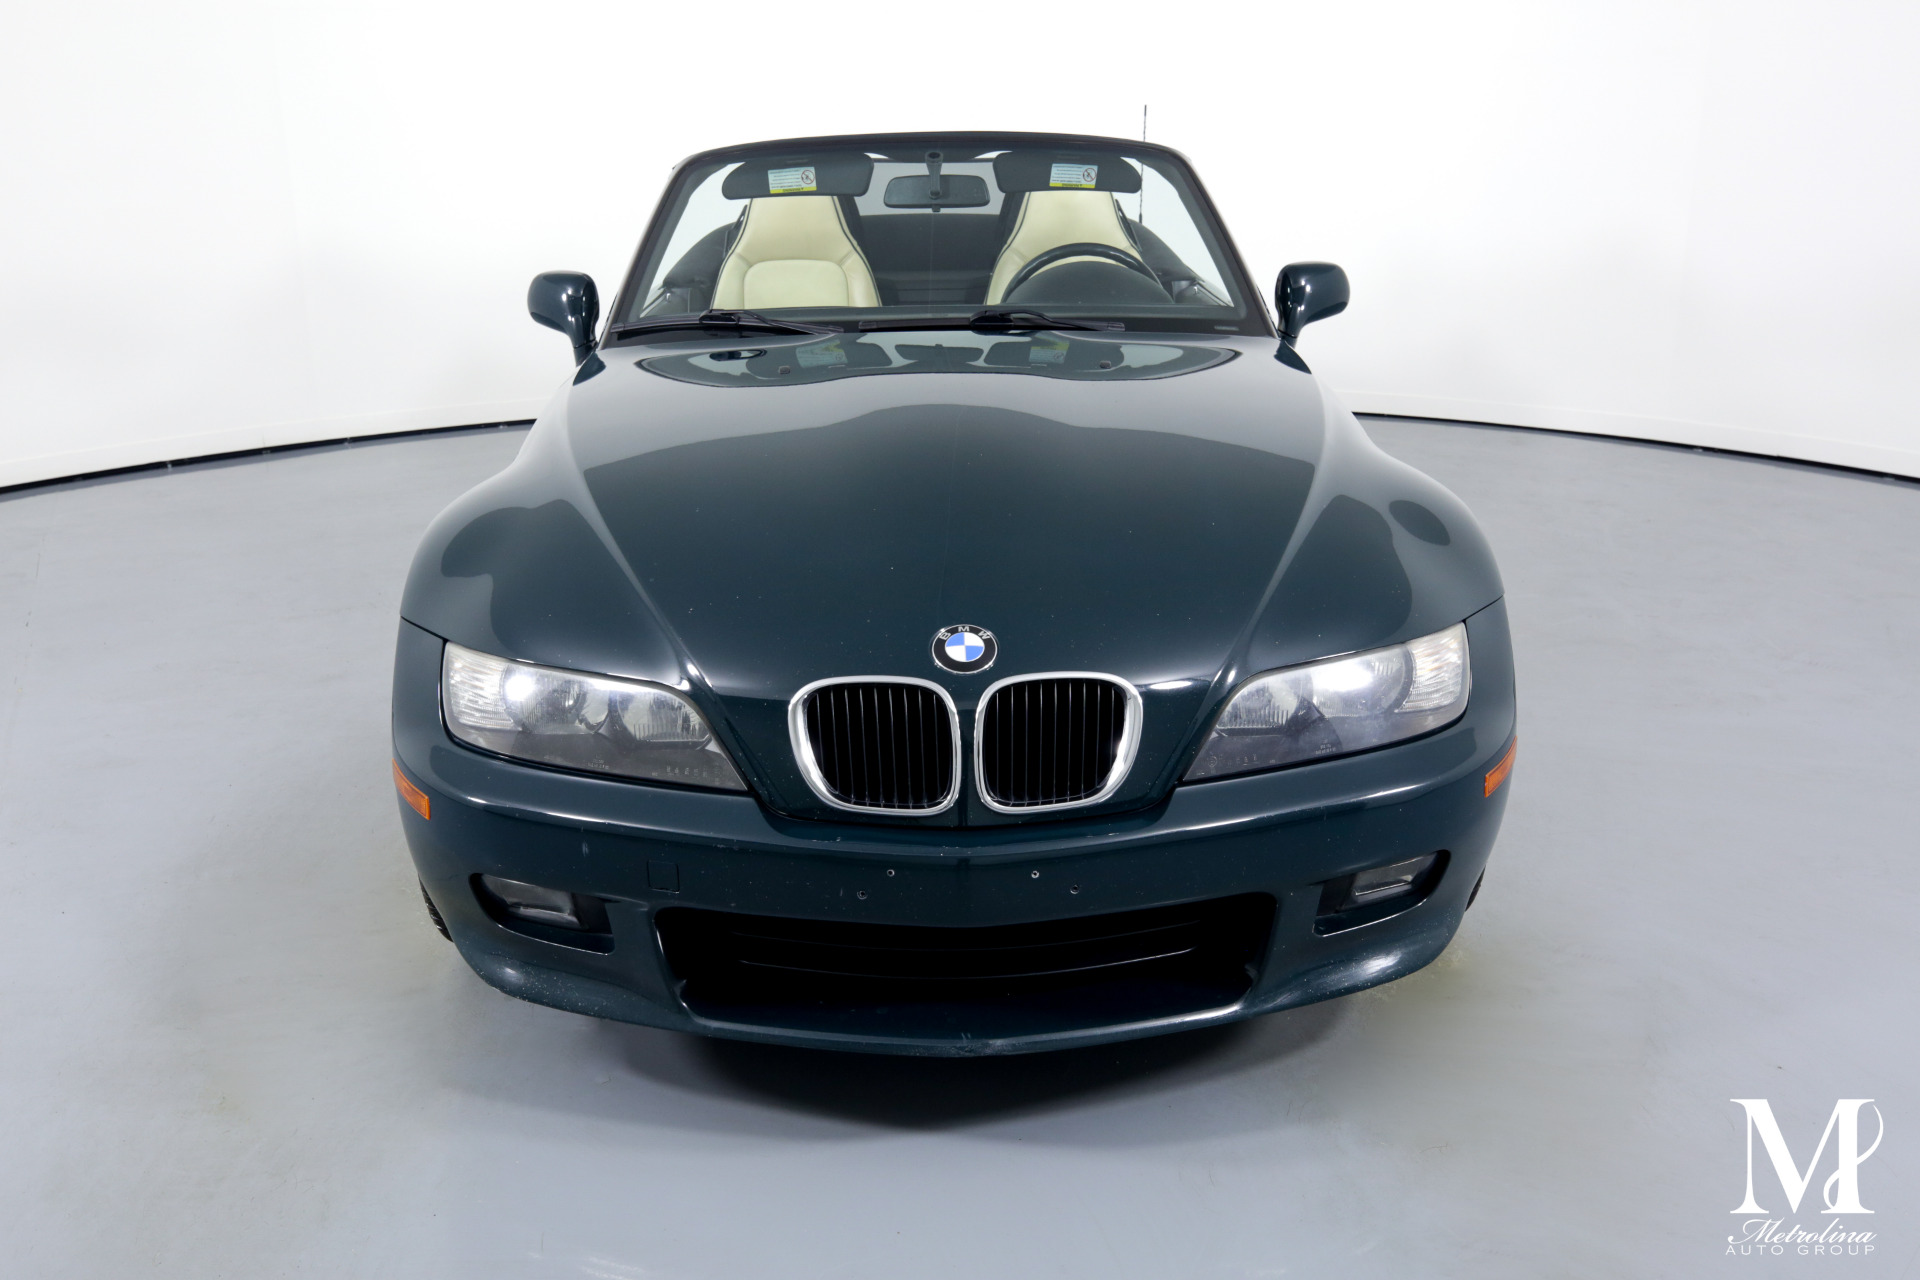 Used 1999 BMW Z3 2.8 for sale $14,996 at Metrolina Auto Group in Charlotte NC 28217 - 4